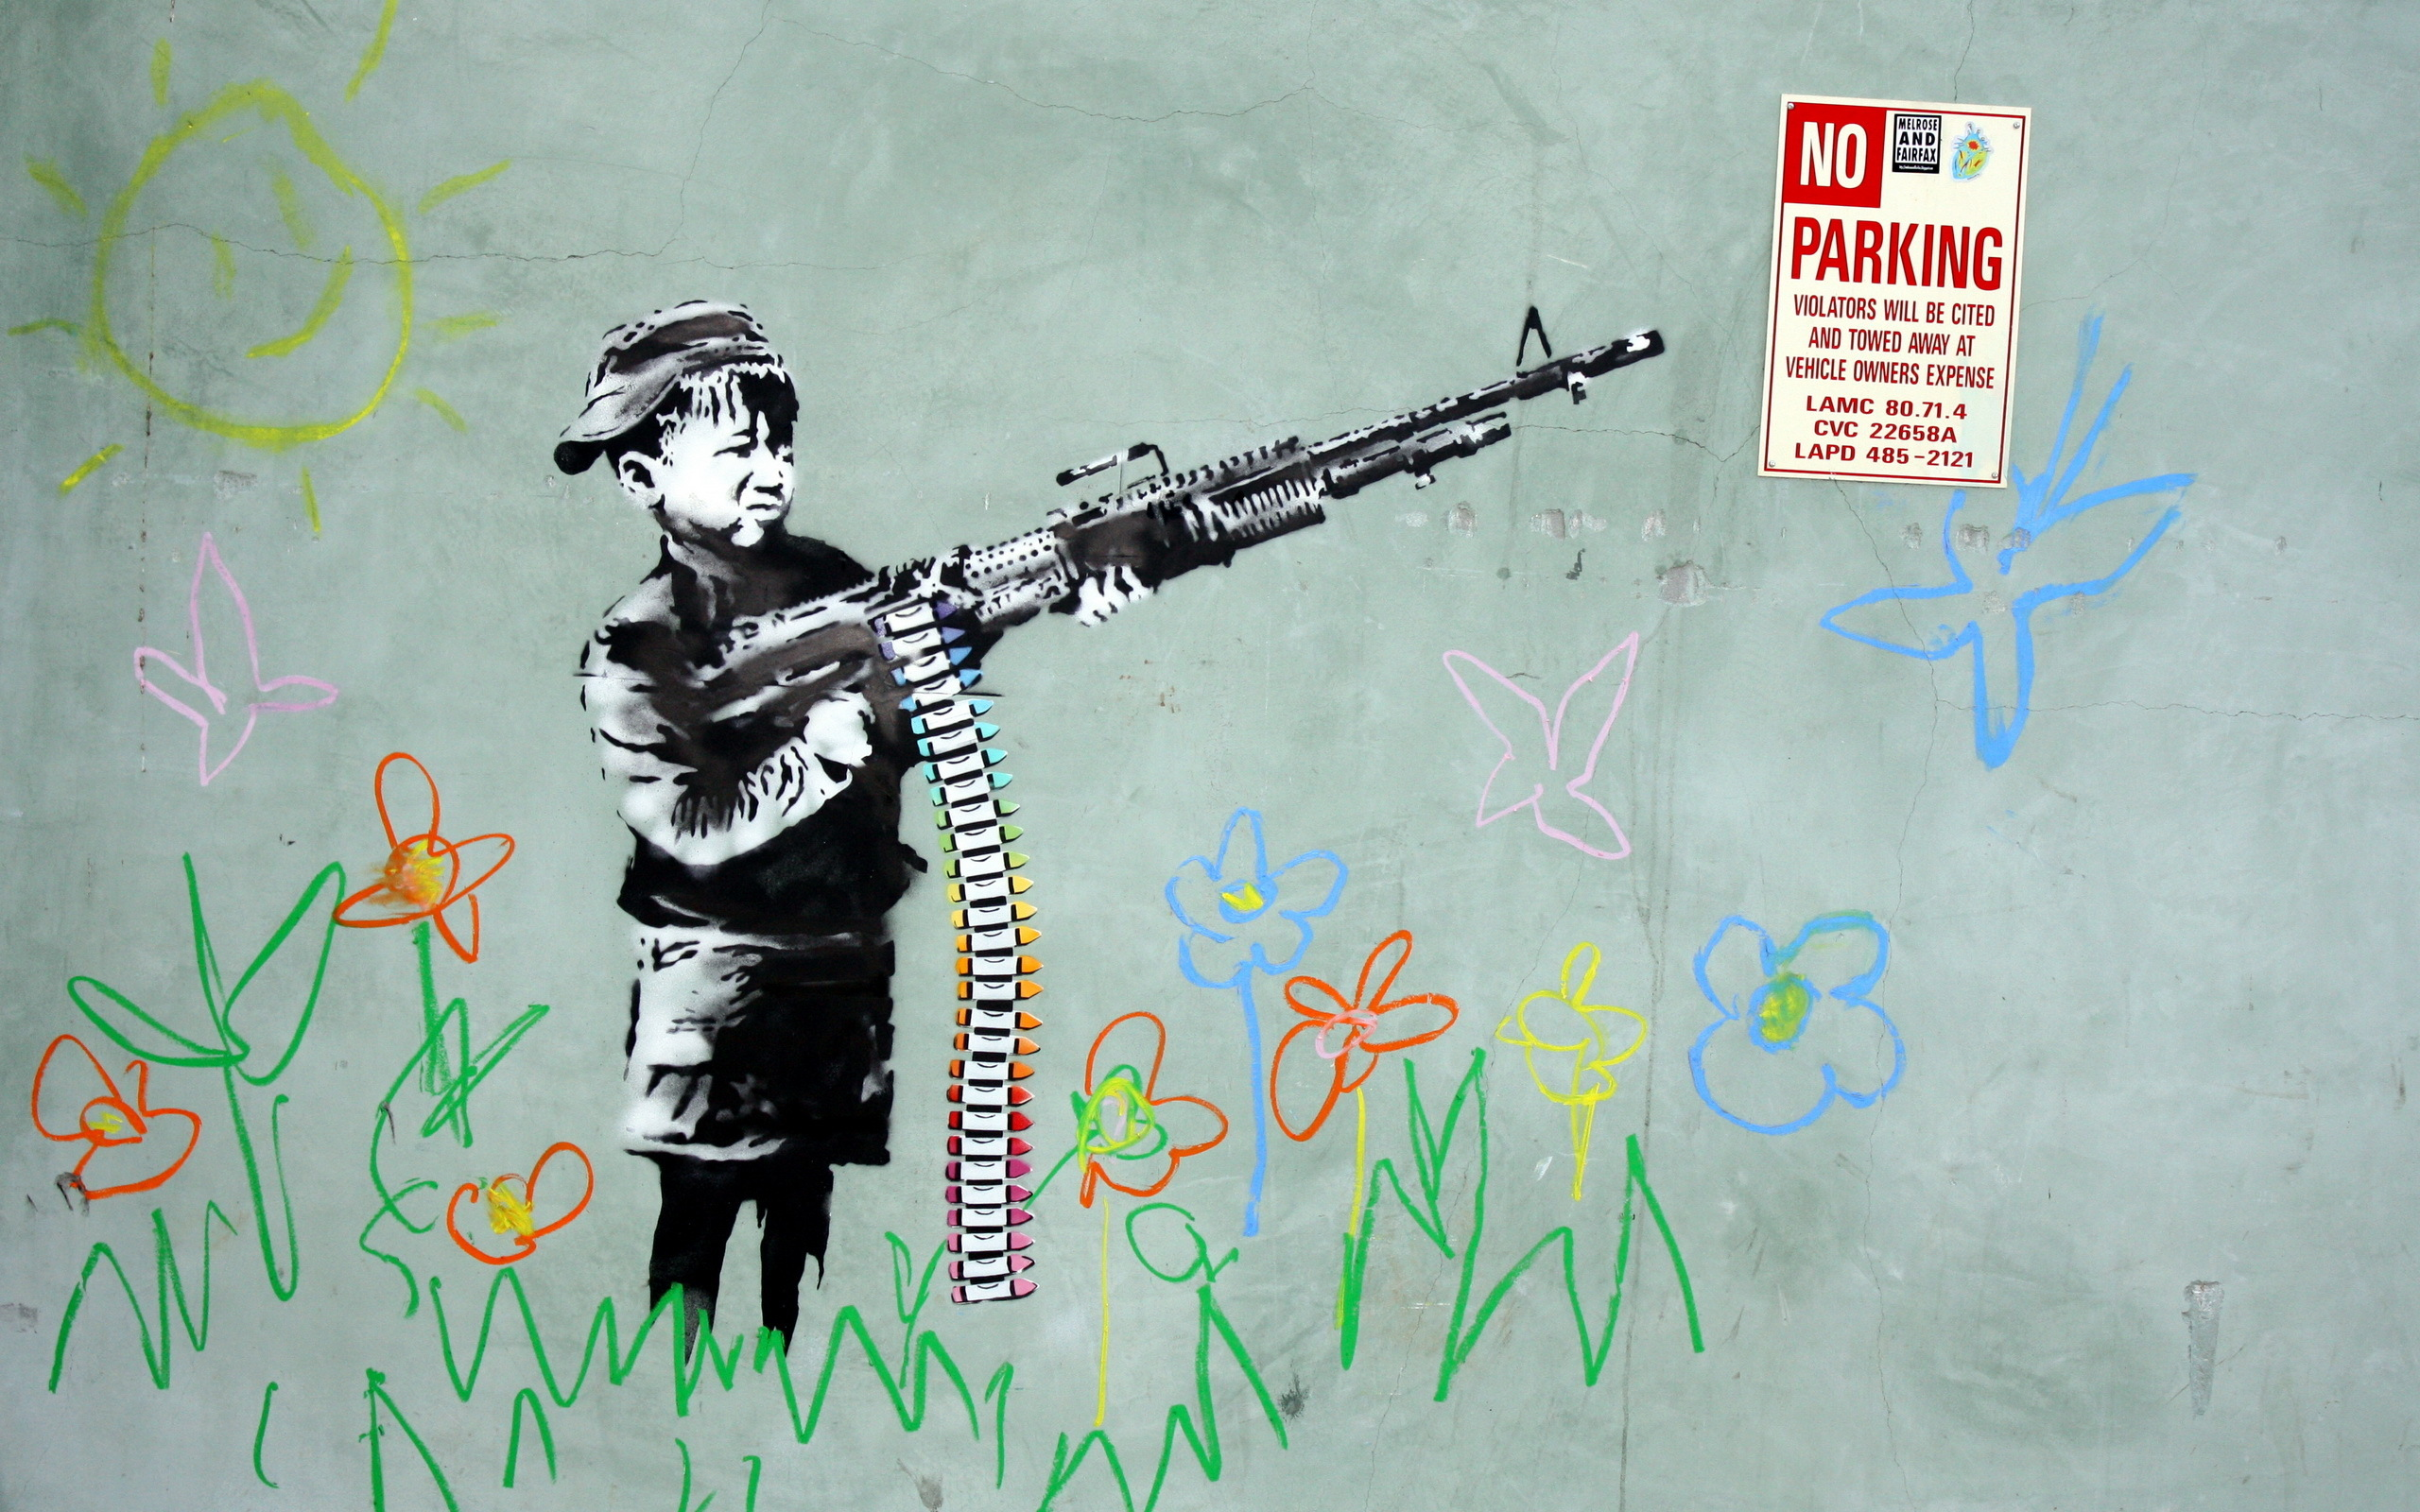 Banksy Wallpaper Hd - WallpaperSafari